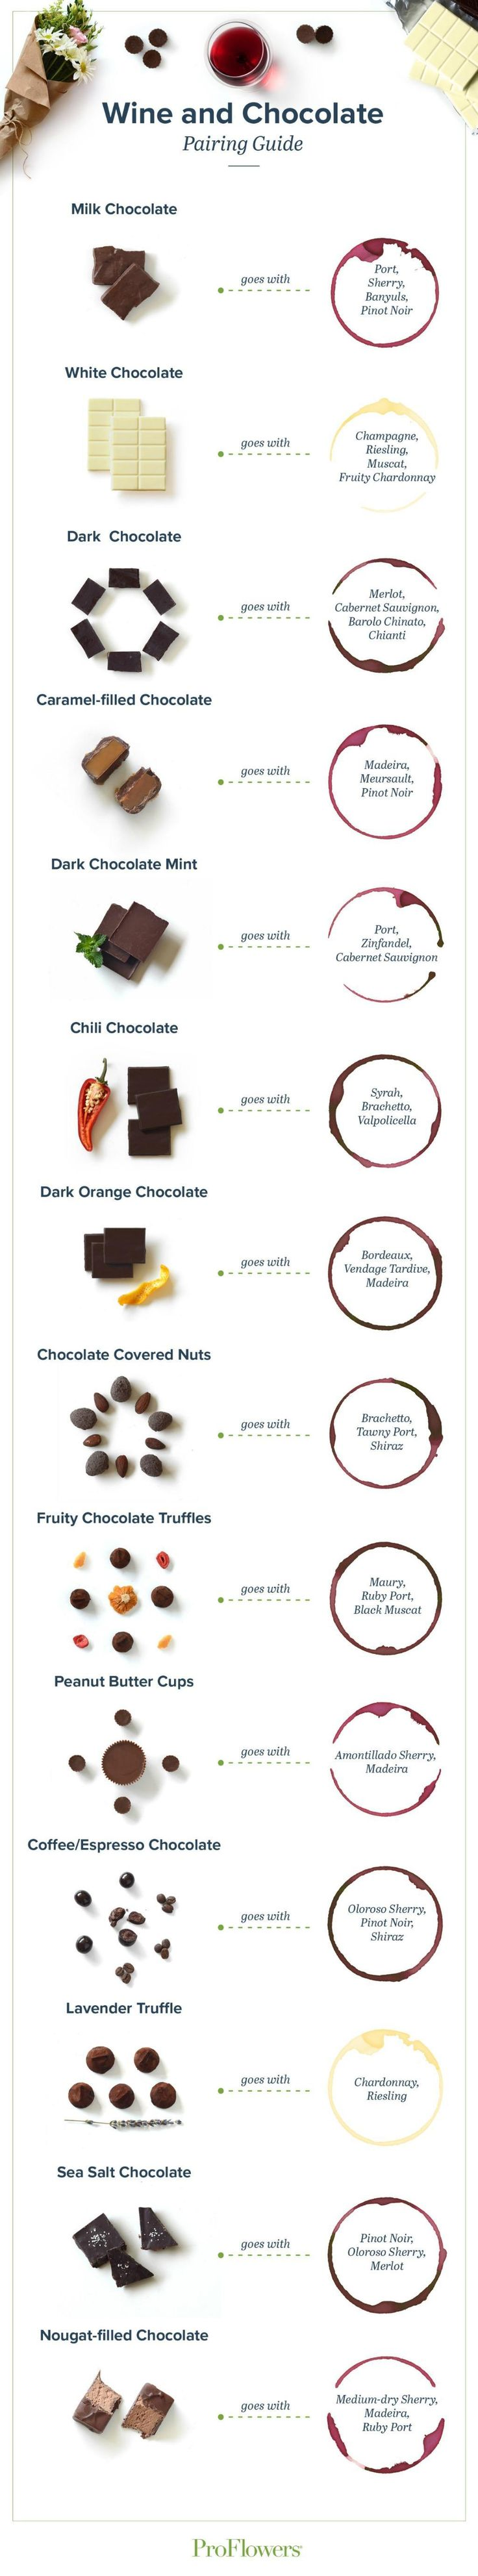 Popular Food Guide Online with 14 of the Best Ways to Pair Wine and Chocolate